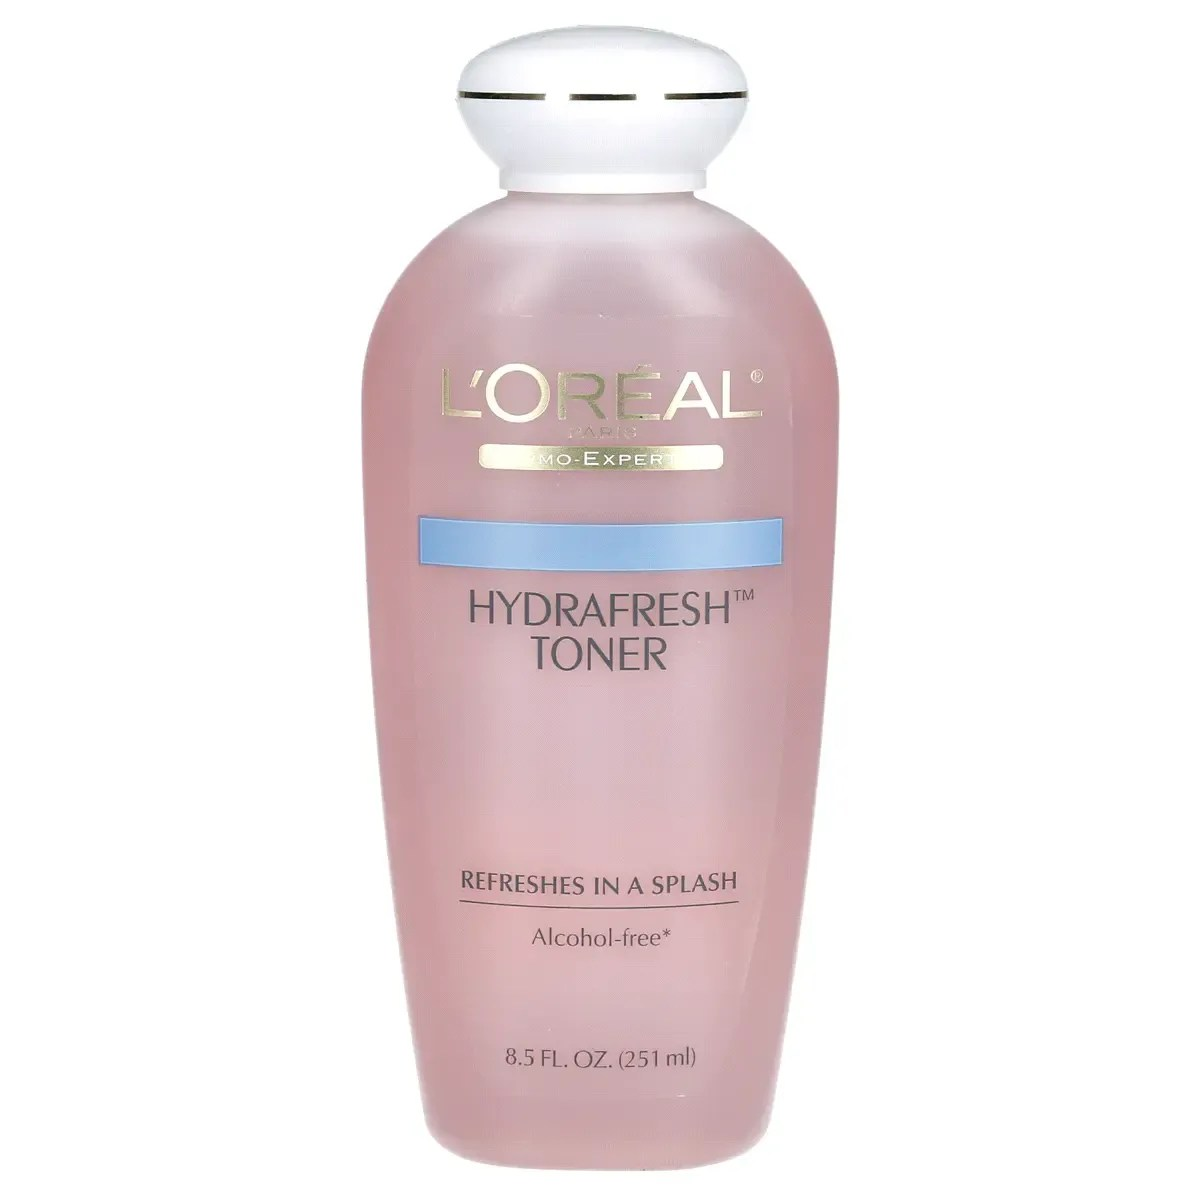 HydraFresh Toner by L'Oreal, the best budget French toner.